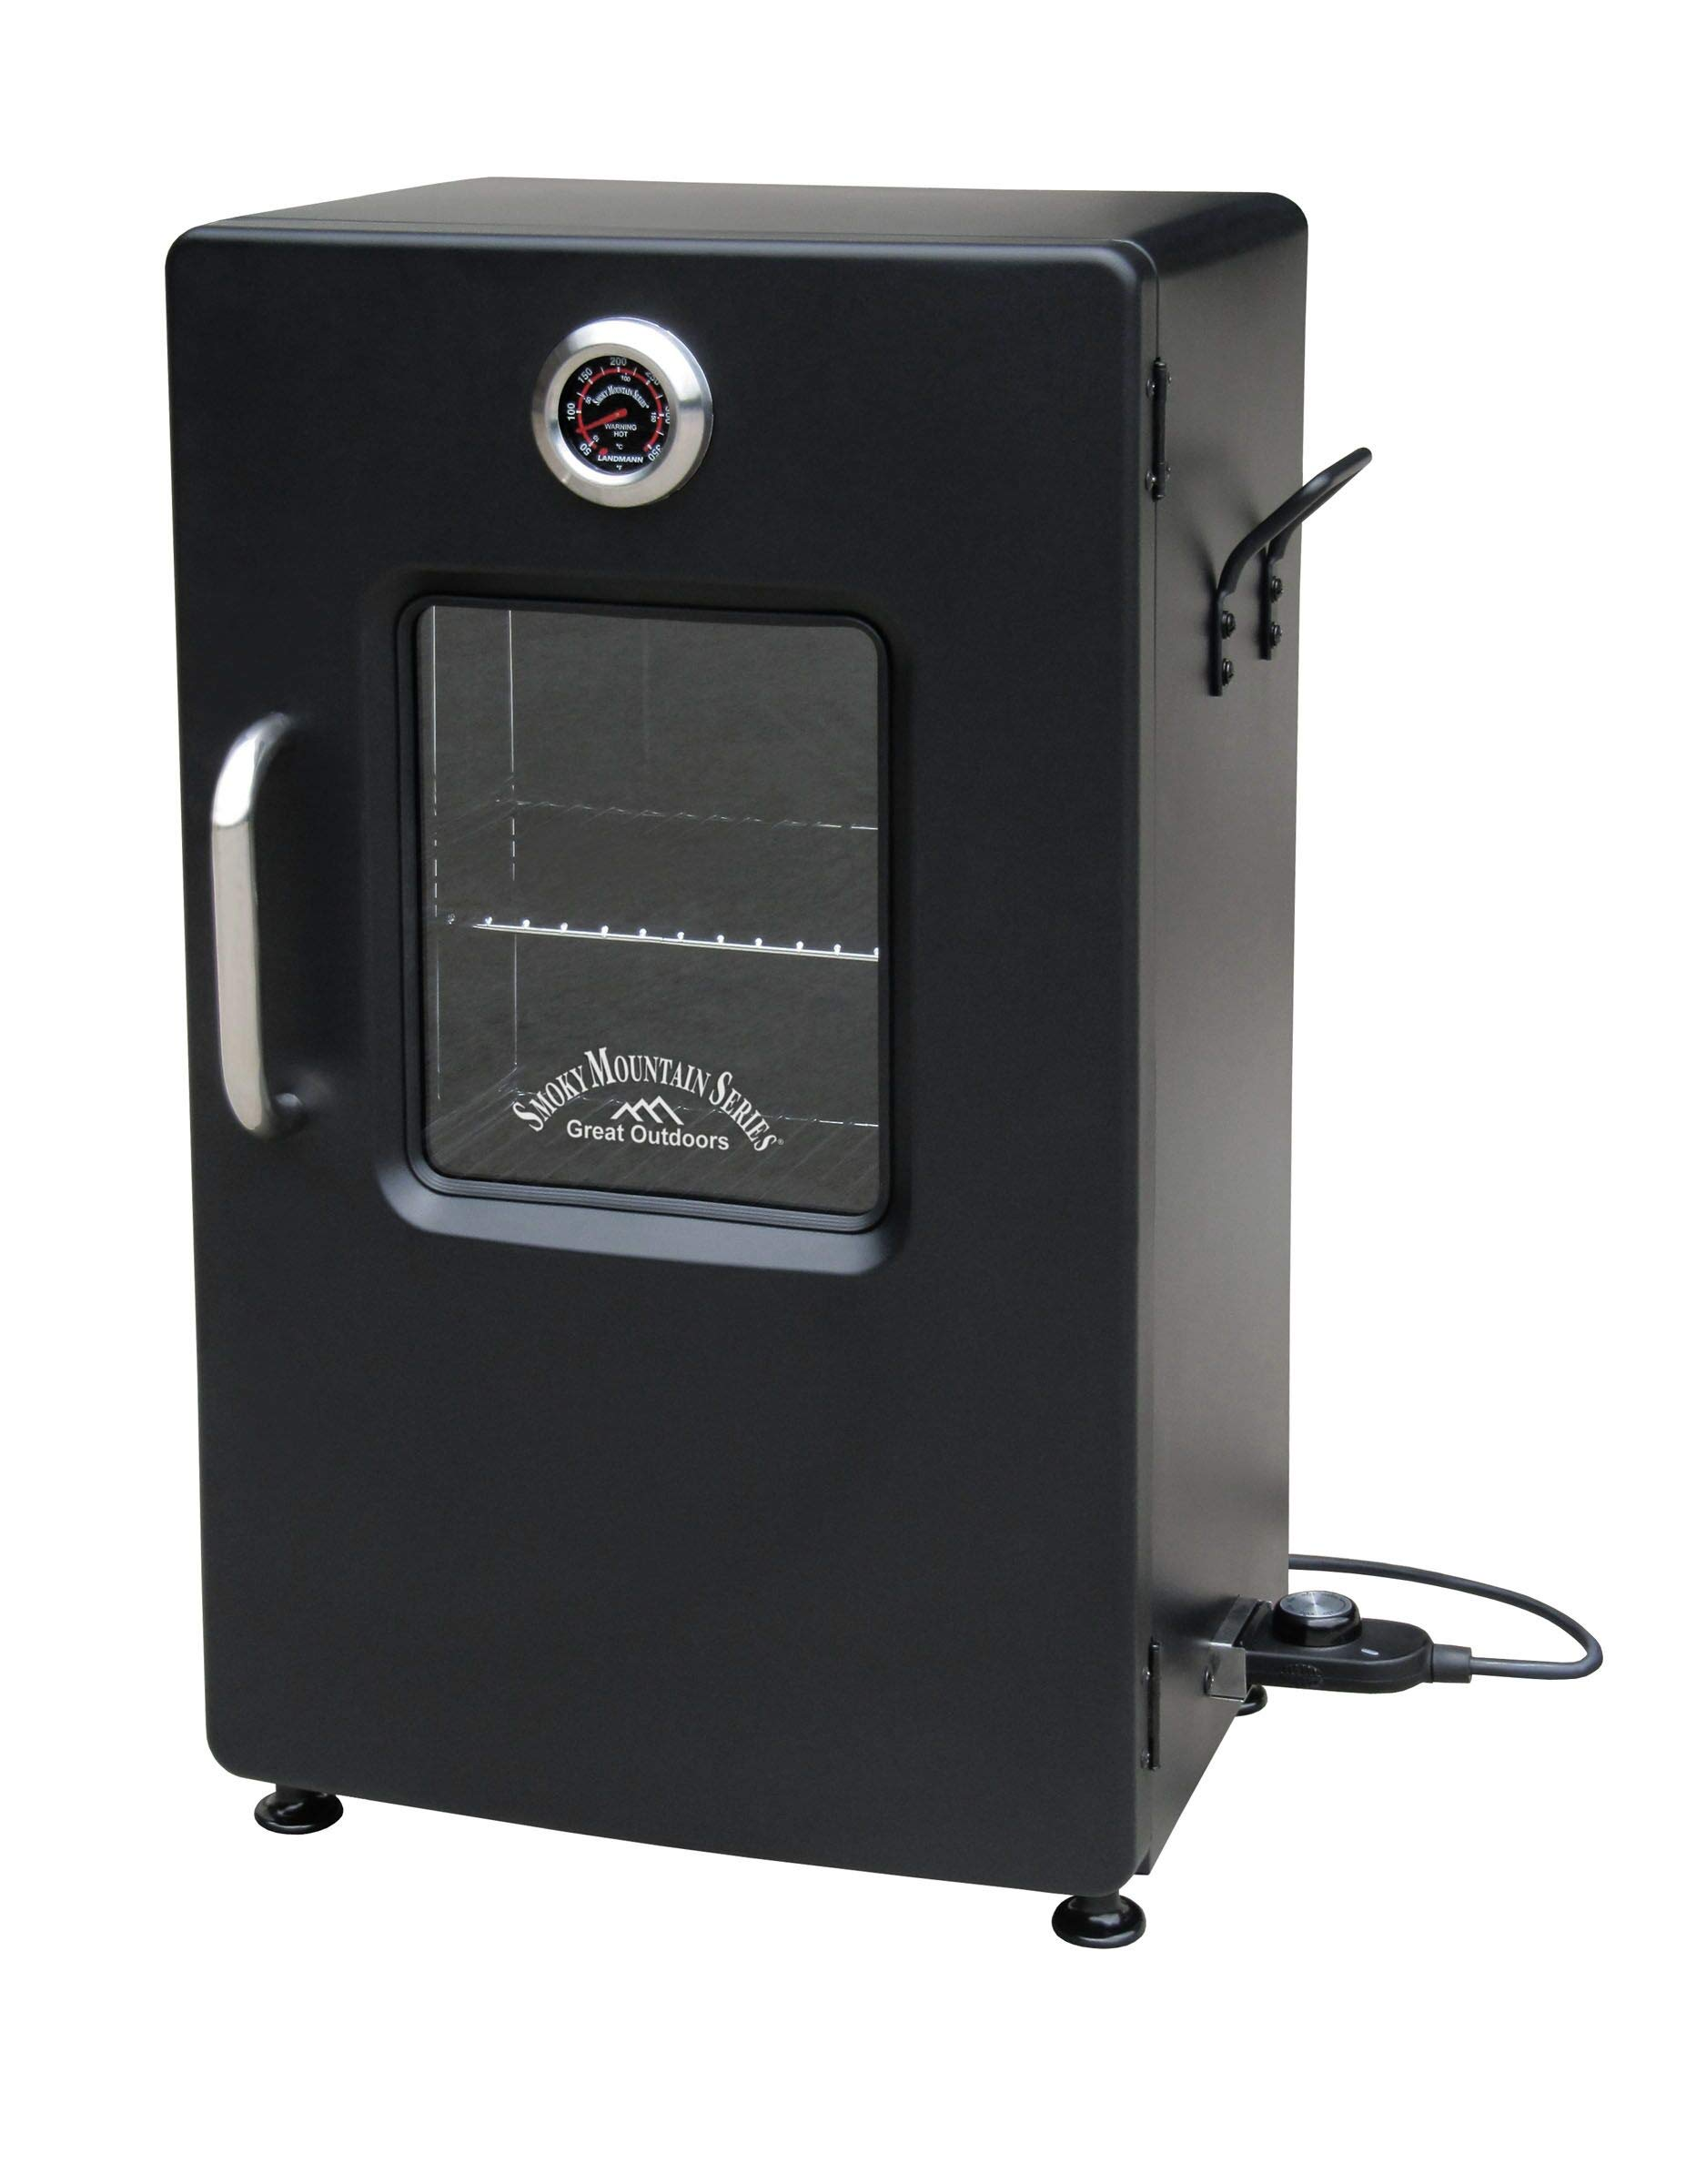 LANDMANN MCO 32954 Landmann Smoky Mountain 26'' Electric Smoker-Black-OPP w/Viewing W by LANDMANN MCO